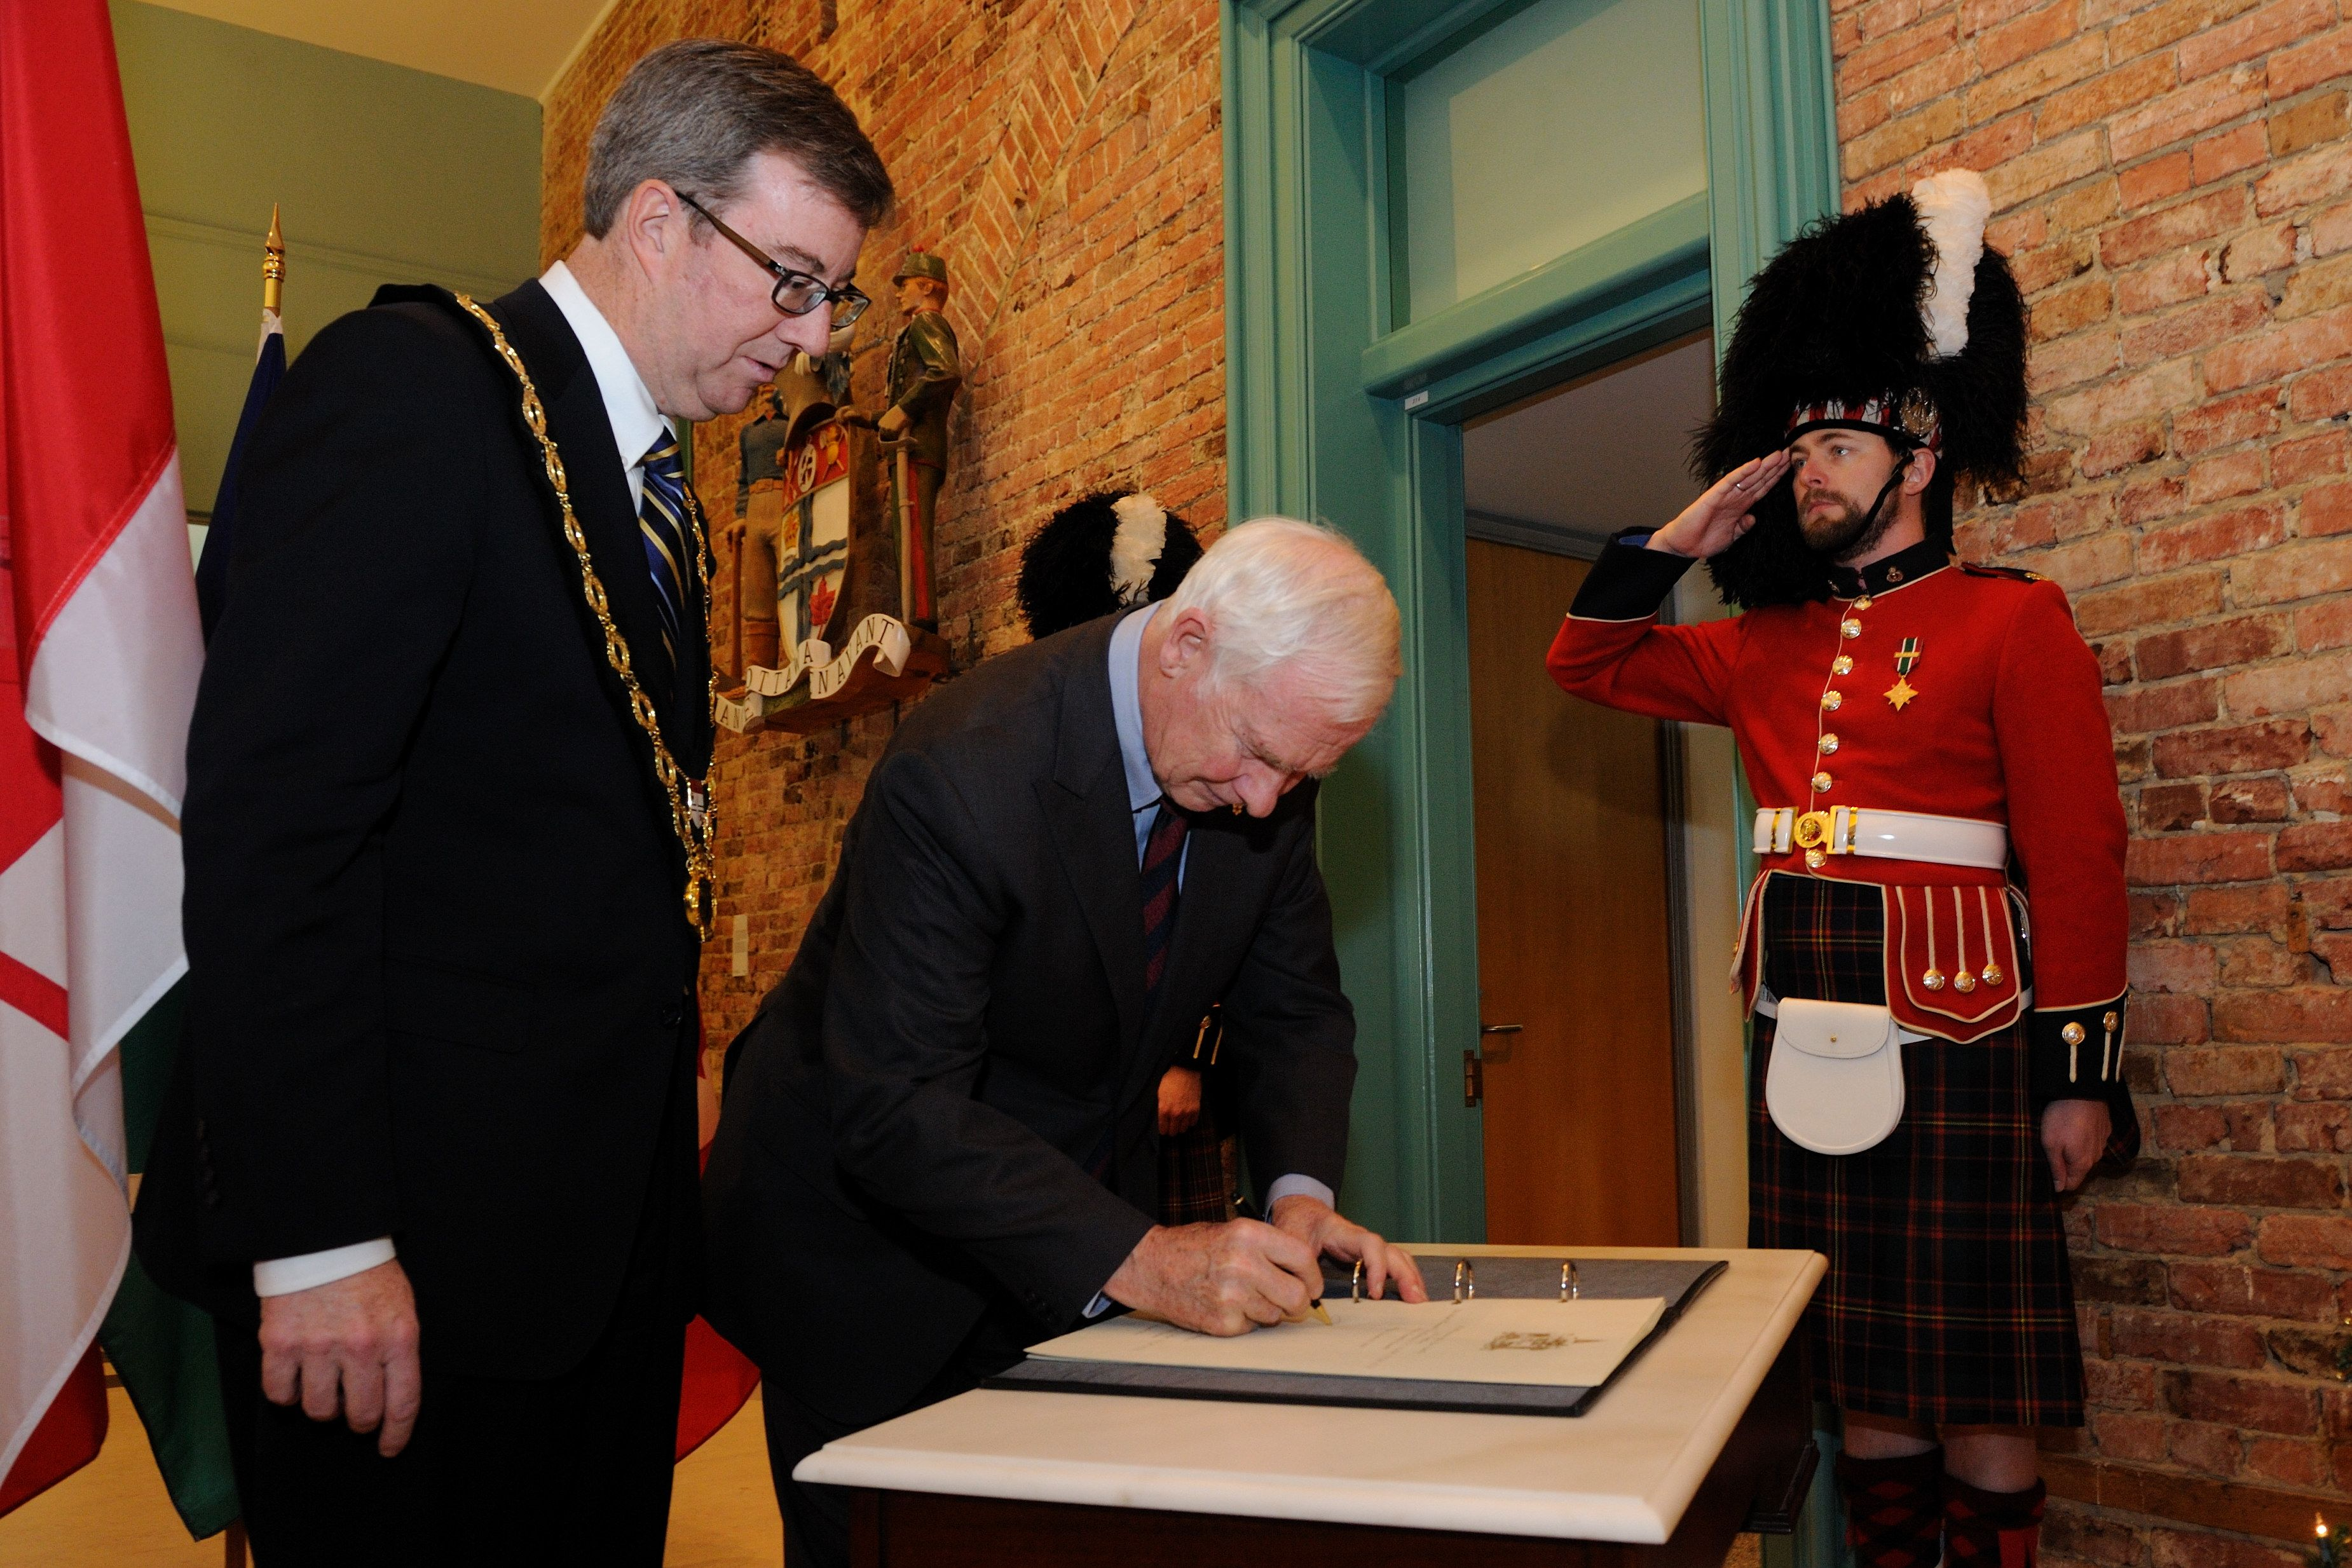 To mark his first official visit to City Hall, the Governor General signed the guest book. His Excellency and His Worship then met in the Mayor's office, followed by a meet and greet with members of City Council.